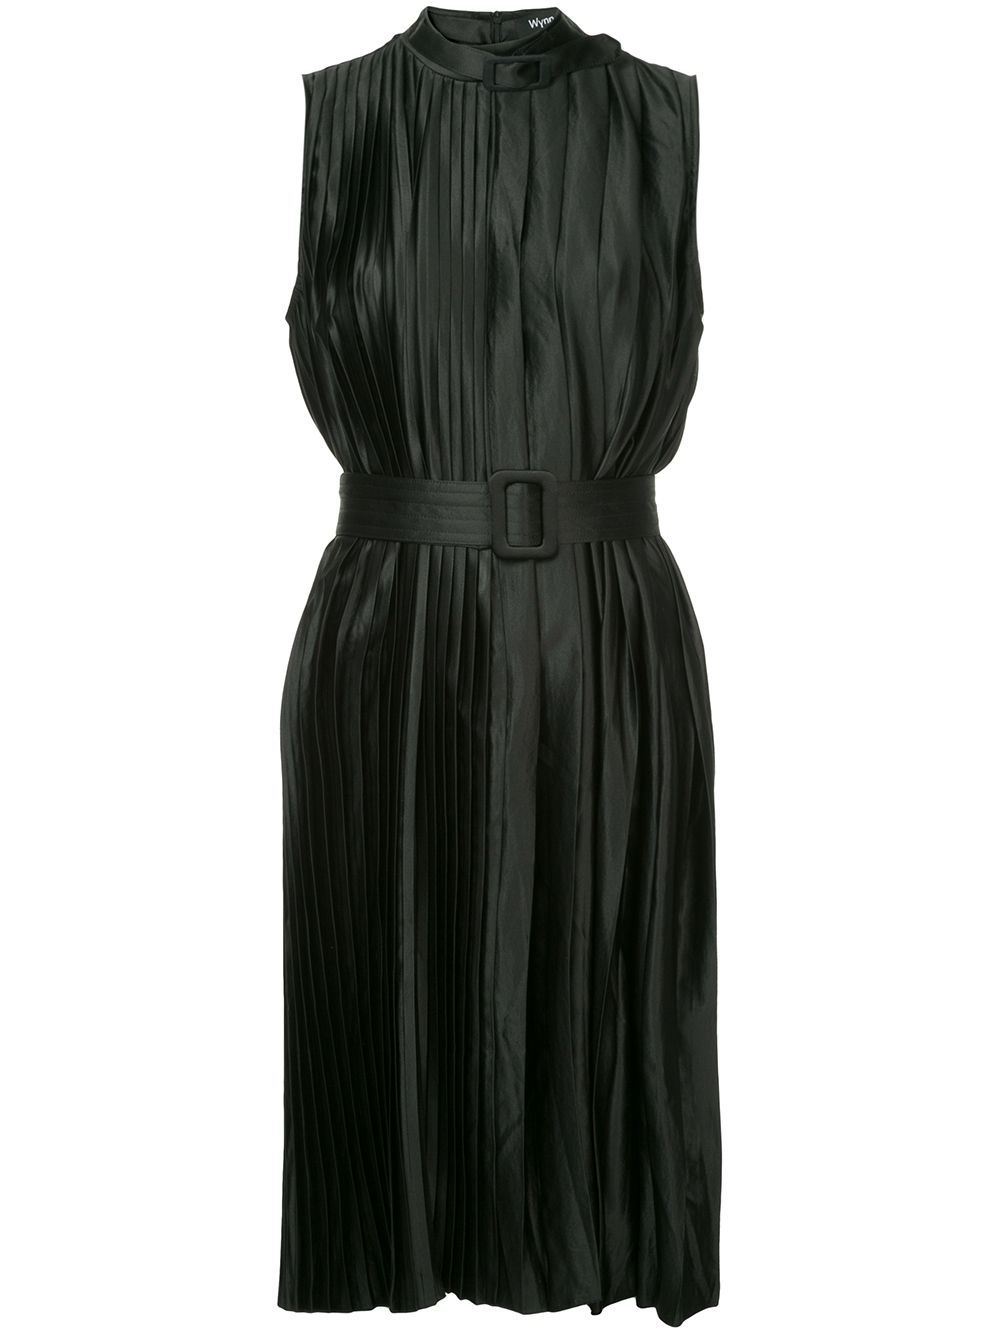 Ripple Pleat Dress Black - Wynn Hamlyn — Shop